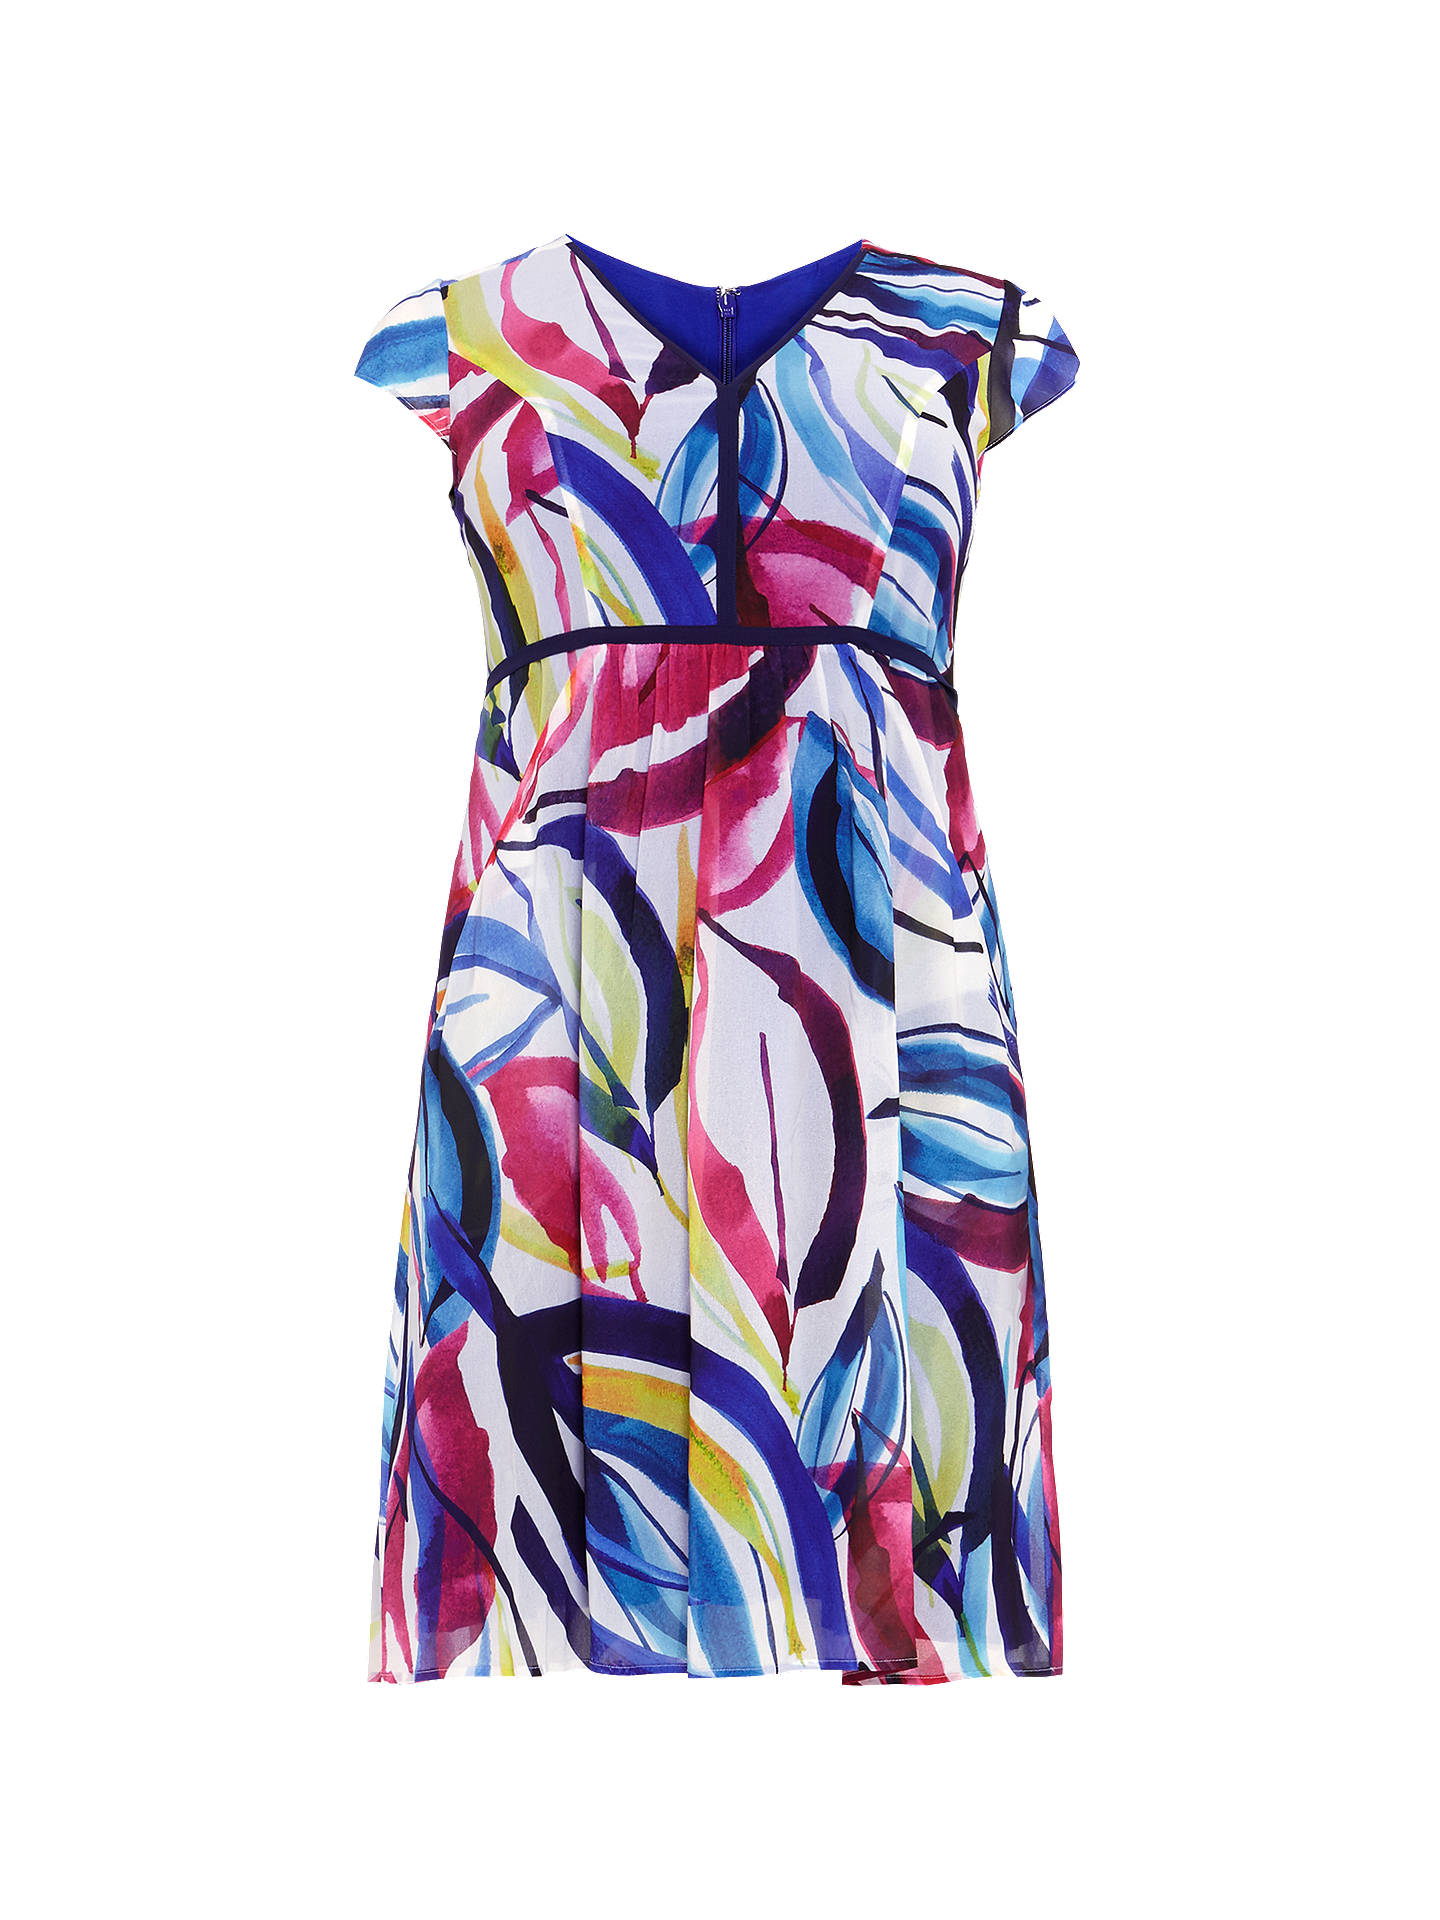 BuyStudio 8 Sienna Print Dress, Multi, 14 Online at johnlewis.com